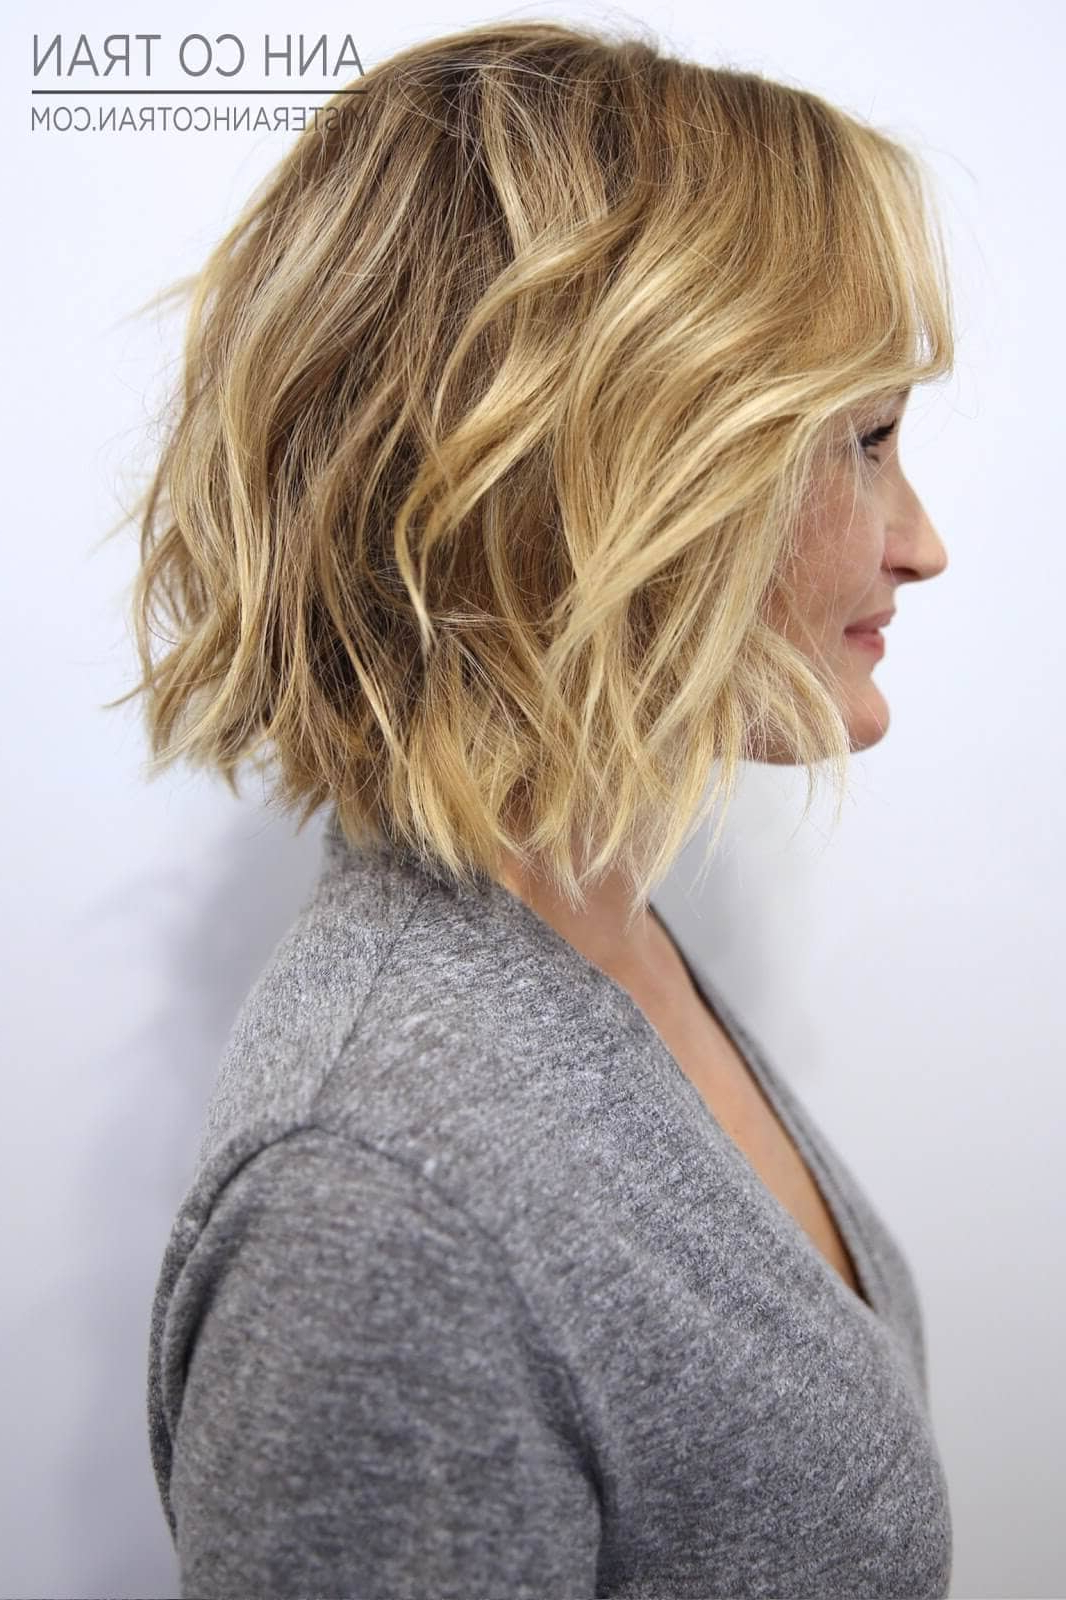 50 Ways To Wear Short Hair With Bangs For A Fresh New Look With Layered Short Hairstyles With Bangs (View 20 of 25)